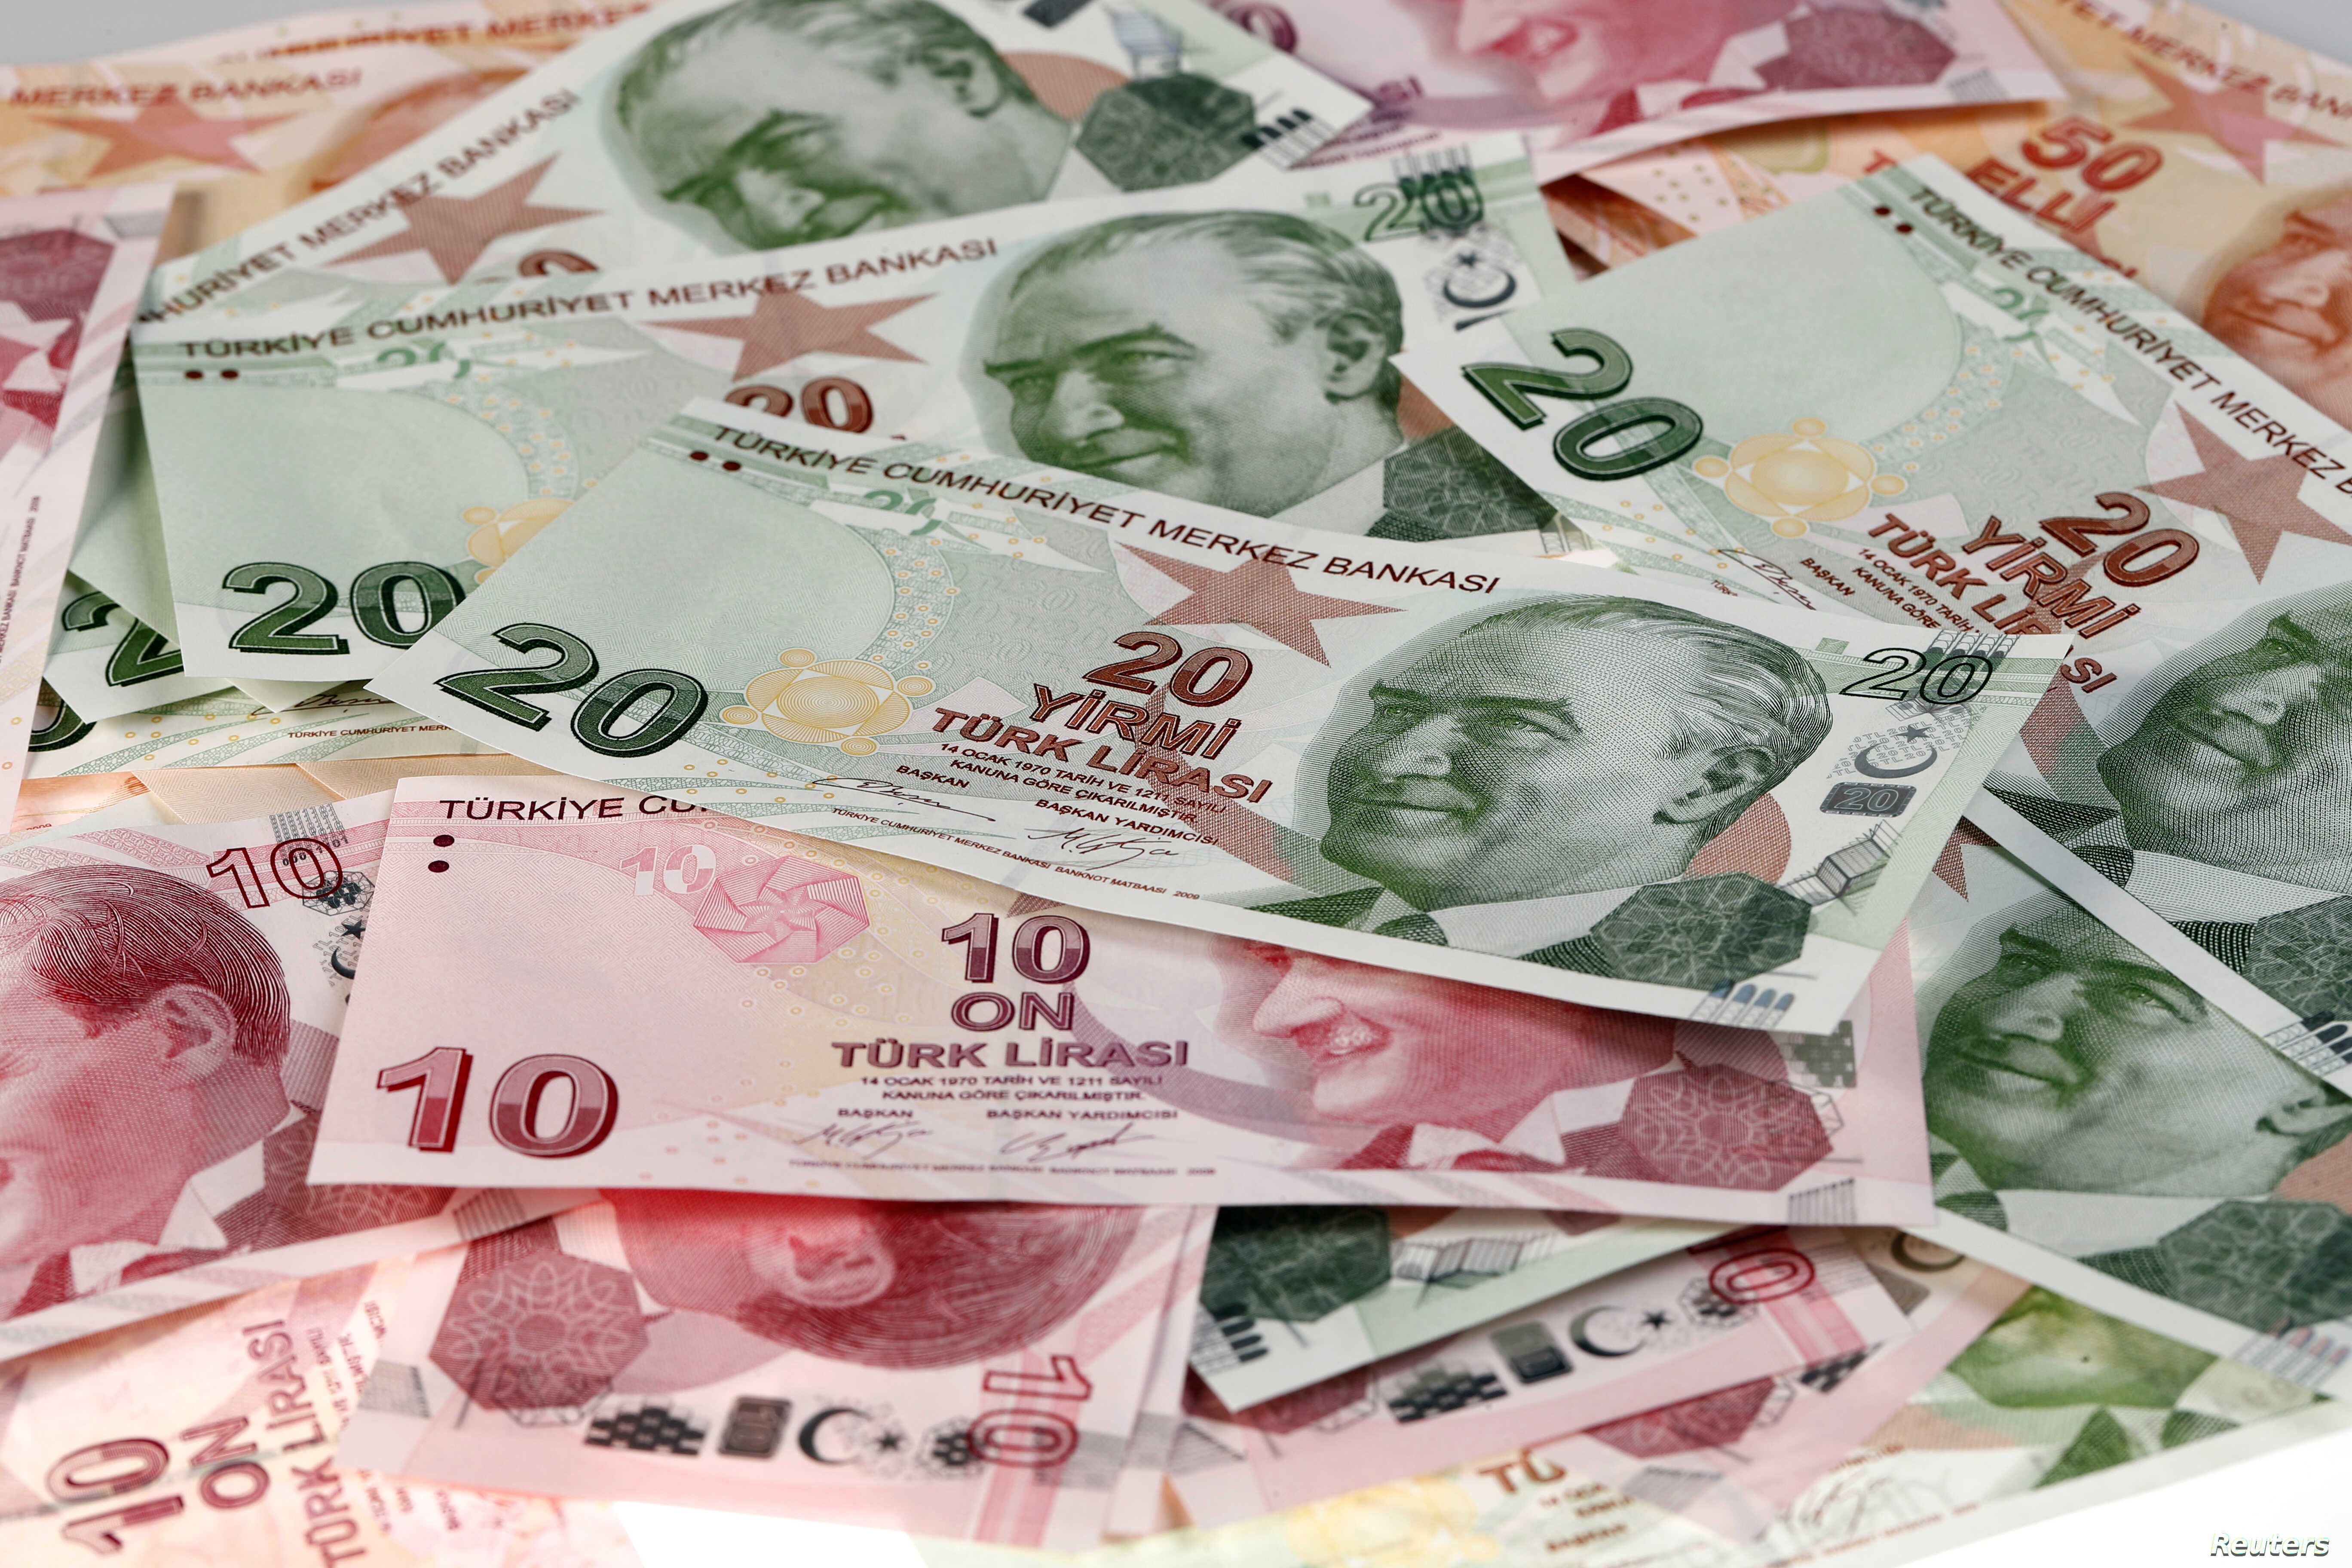 Turkish Lira banknotes are seen in this Oct. 10, 2017 picture illustration.